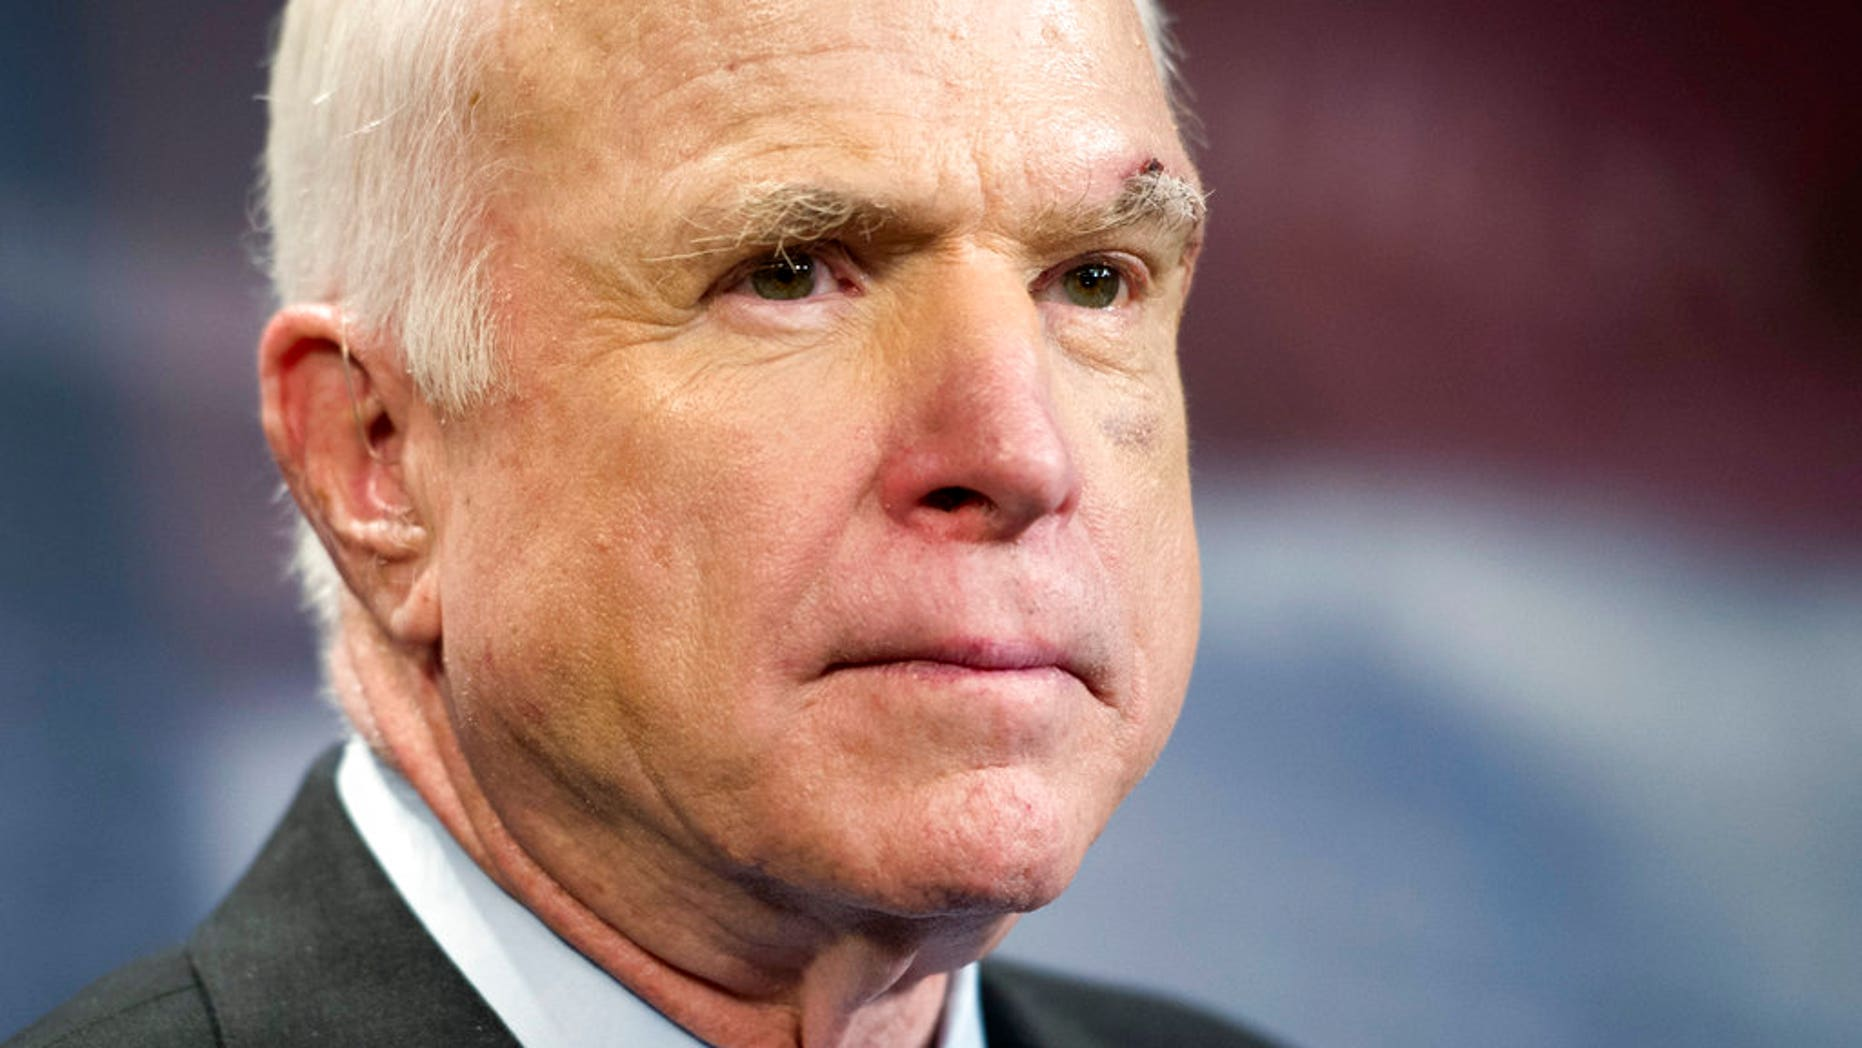 Sen. John McCain was hospitalized over the weekend for a tear in his Achilles tendon, his office said in a statement on Monday.